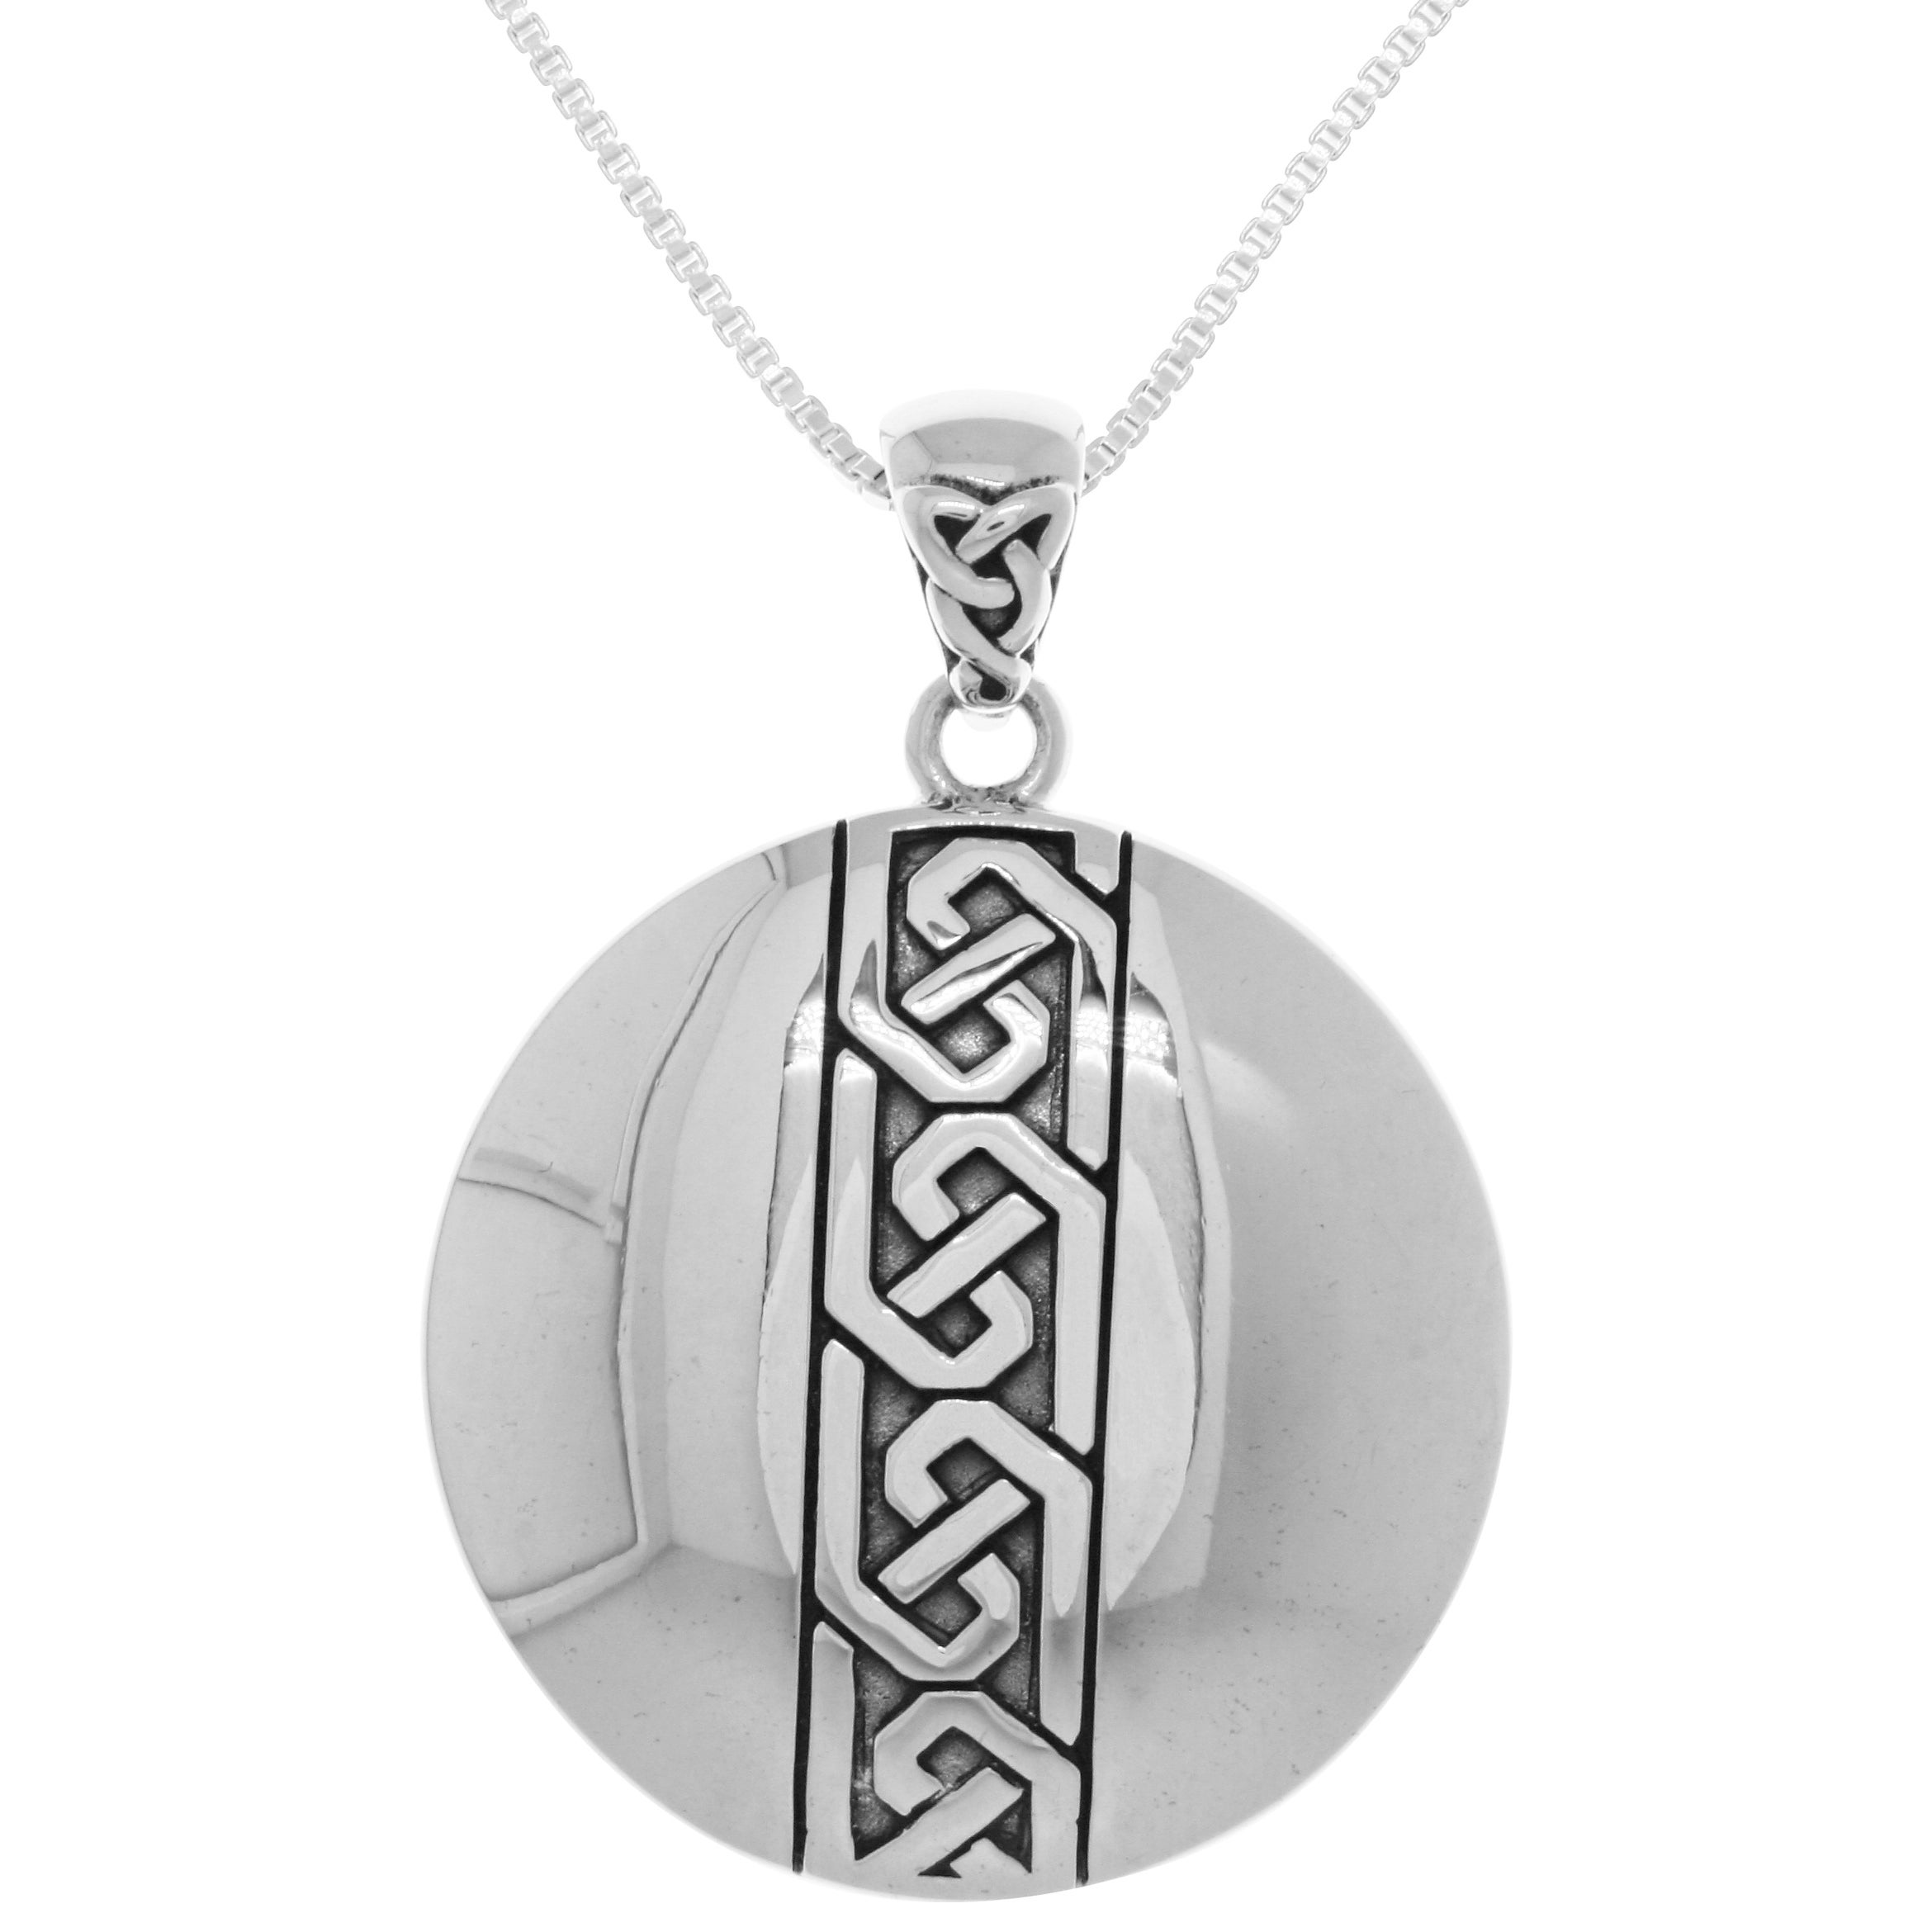 montana oval silversmiths medallion necklace pendant tracery filigree